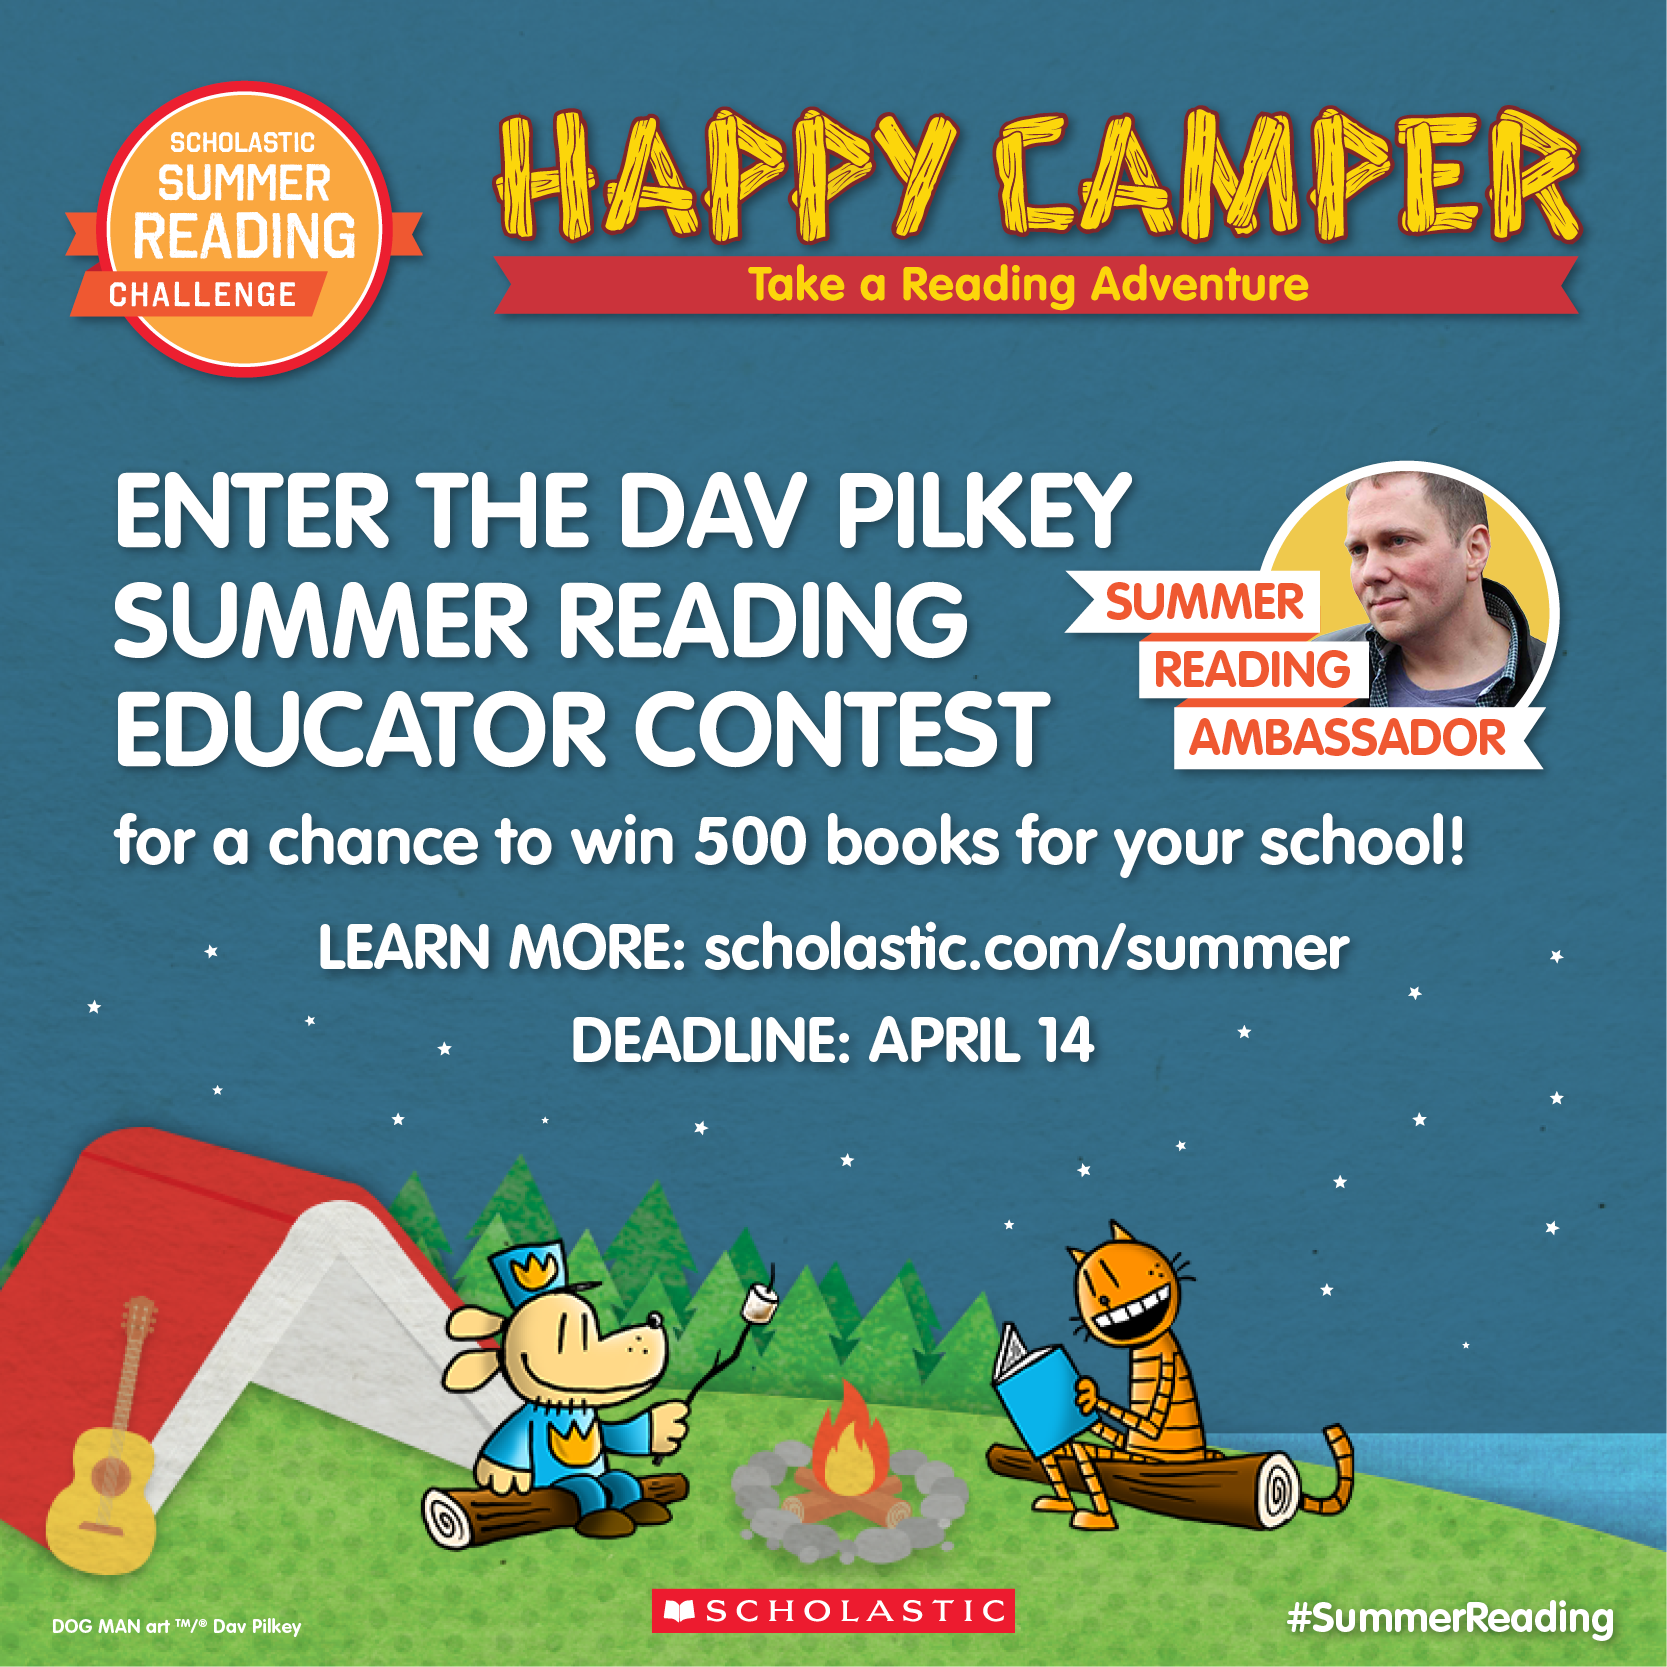 Exciting News On The 2017 Scholastic Summer Reading Challenge